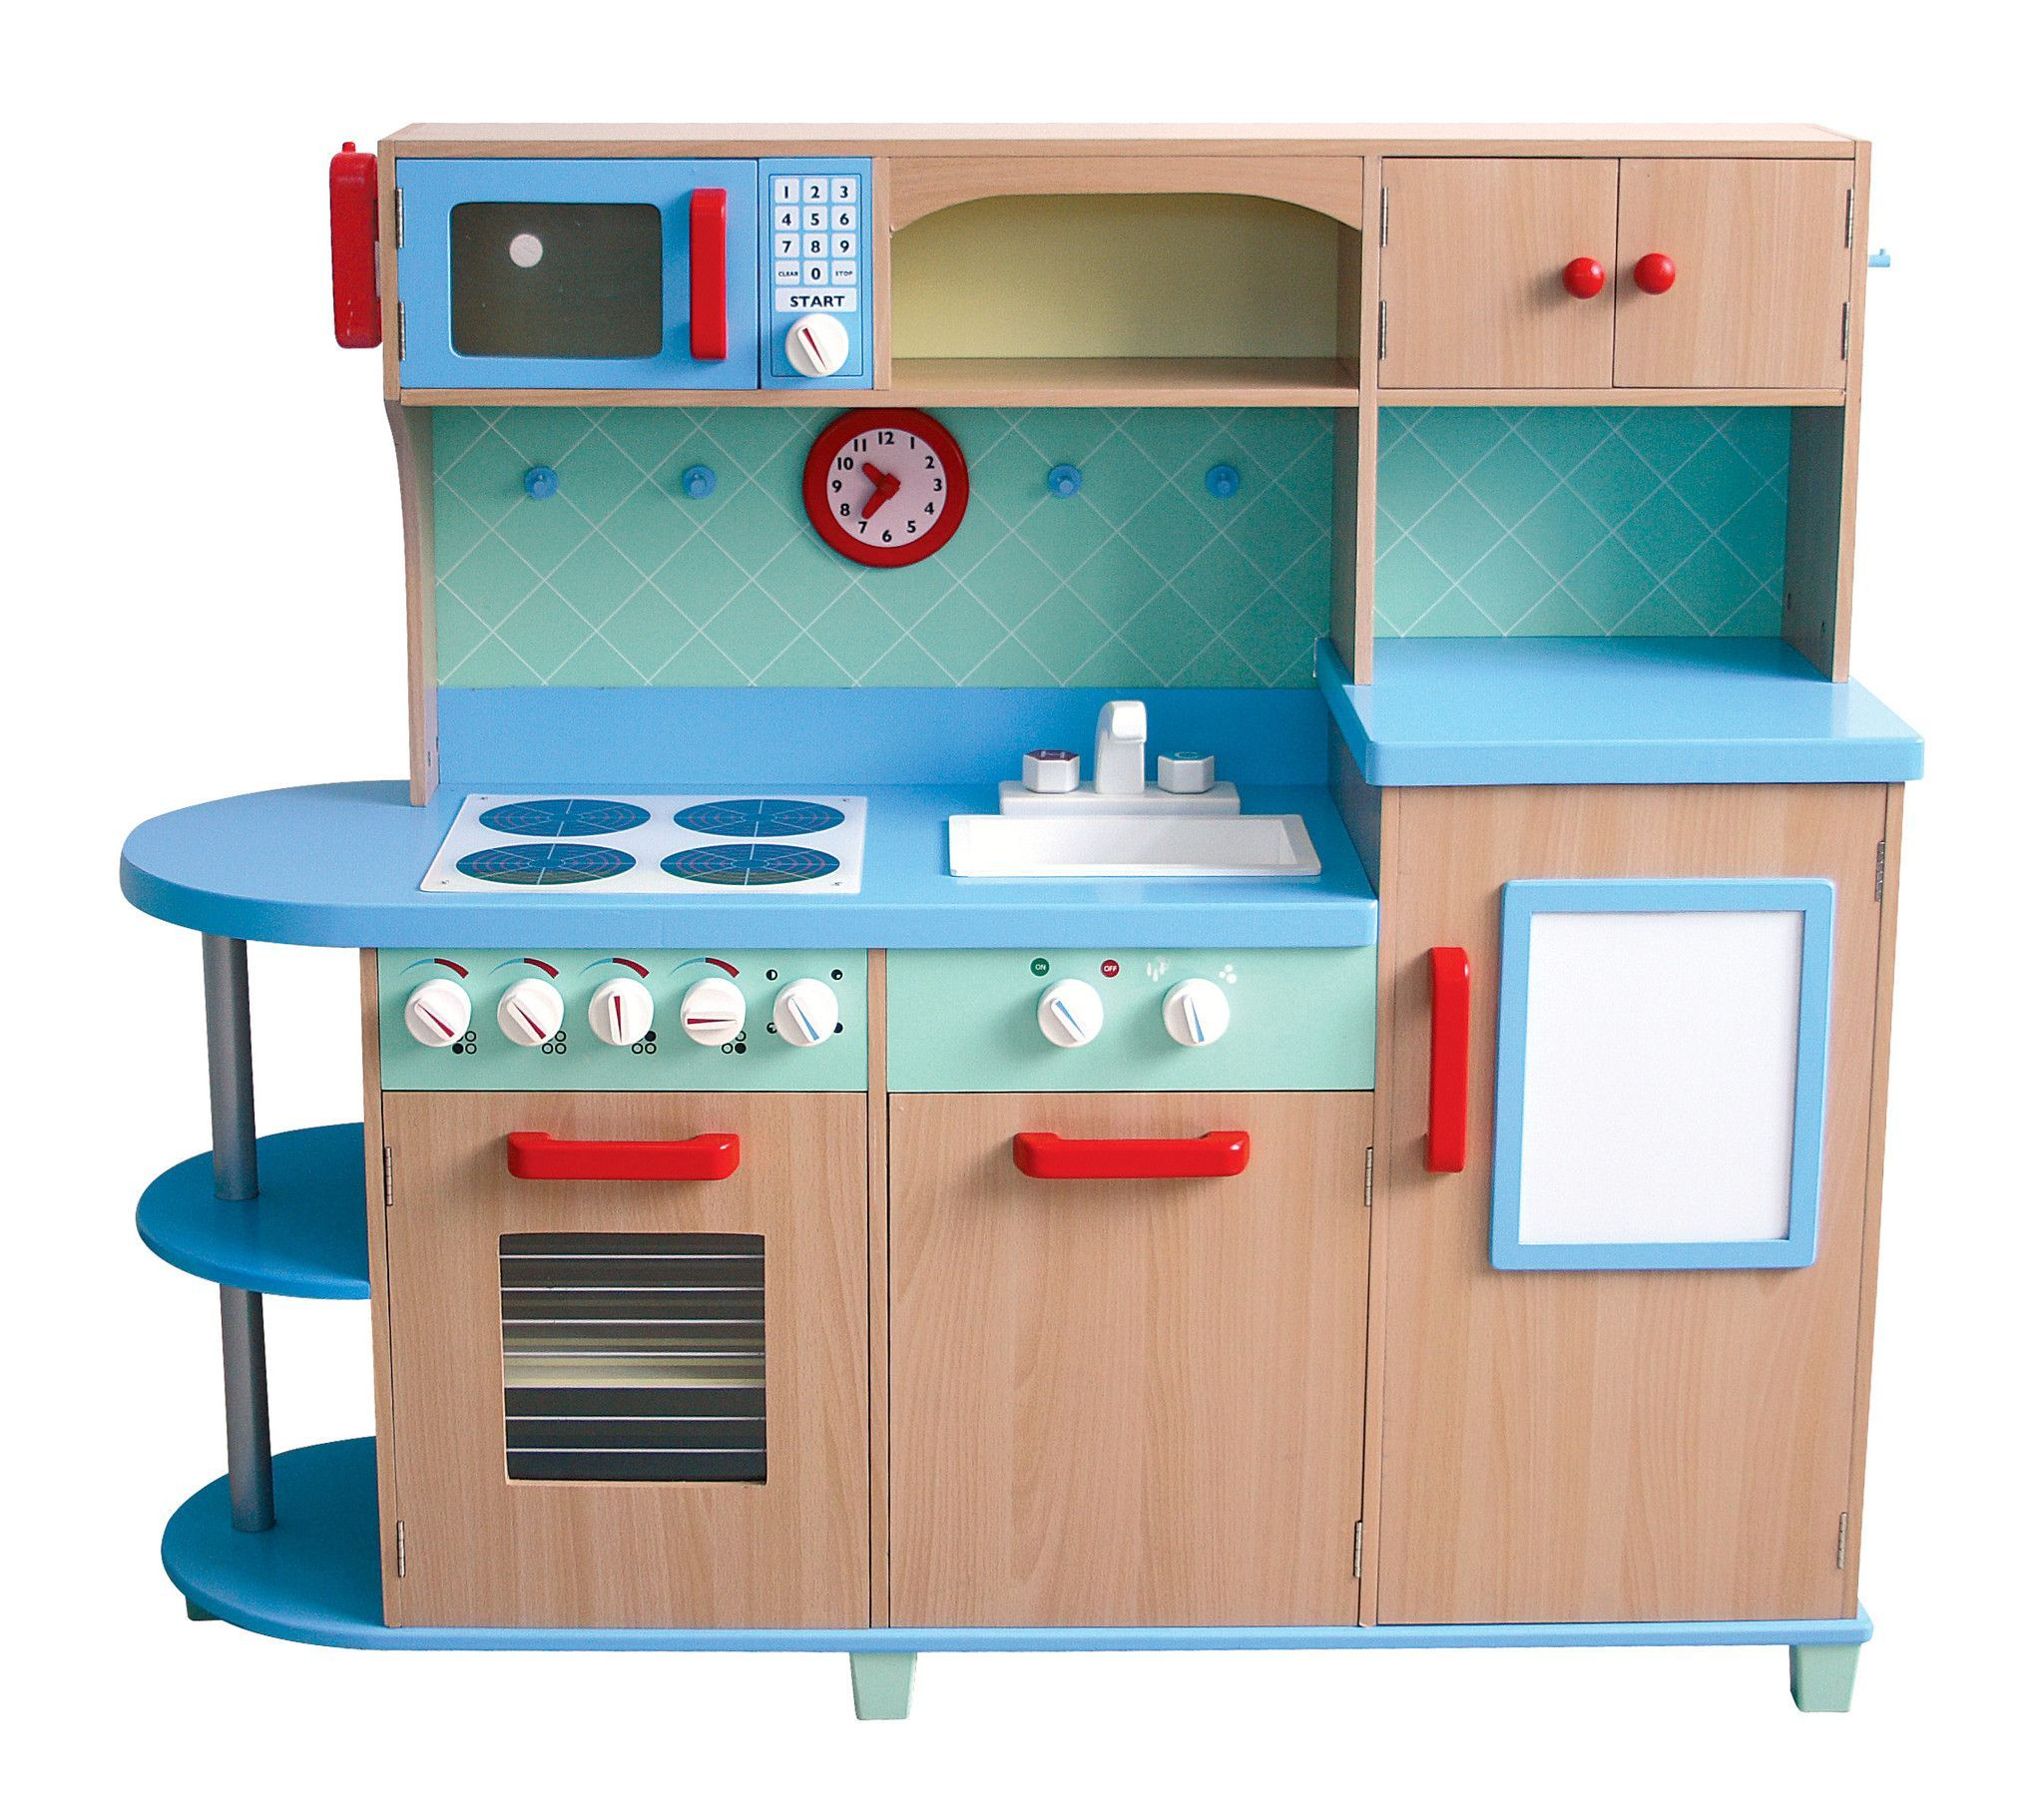 Guidecraft All in One Play Kitchen G97249 | Products | Pinterest ...